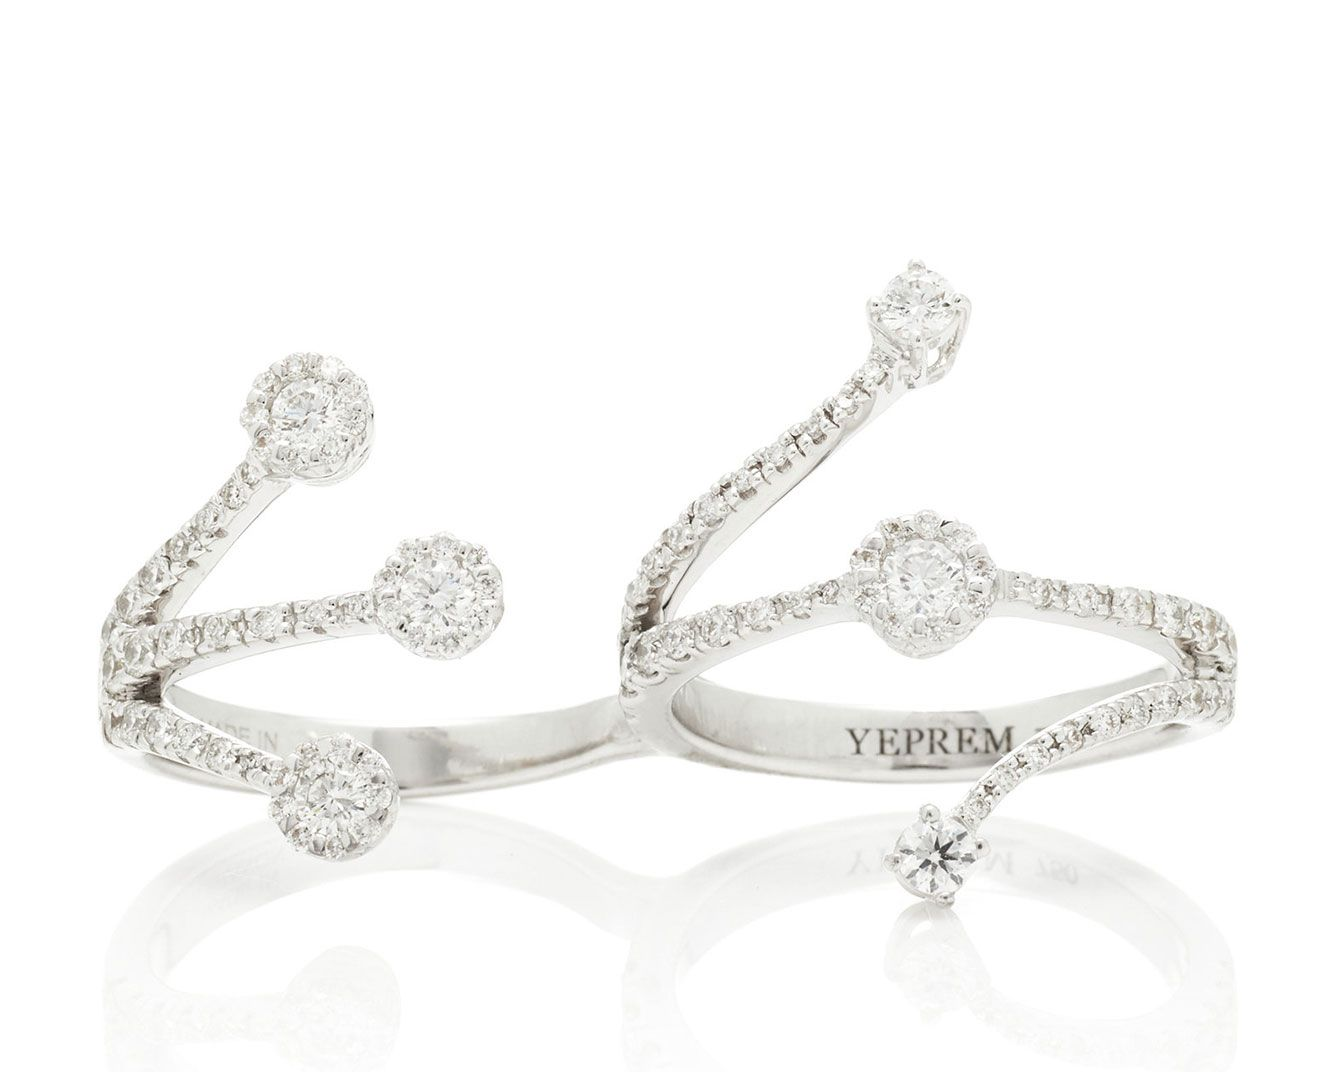 Yeprem Wrapped 18K White Gold And Diamond Two-Finger Ring